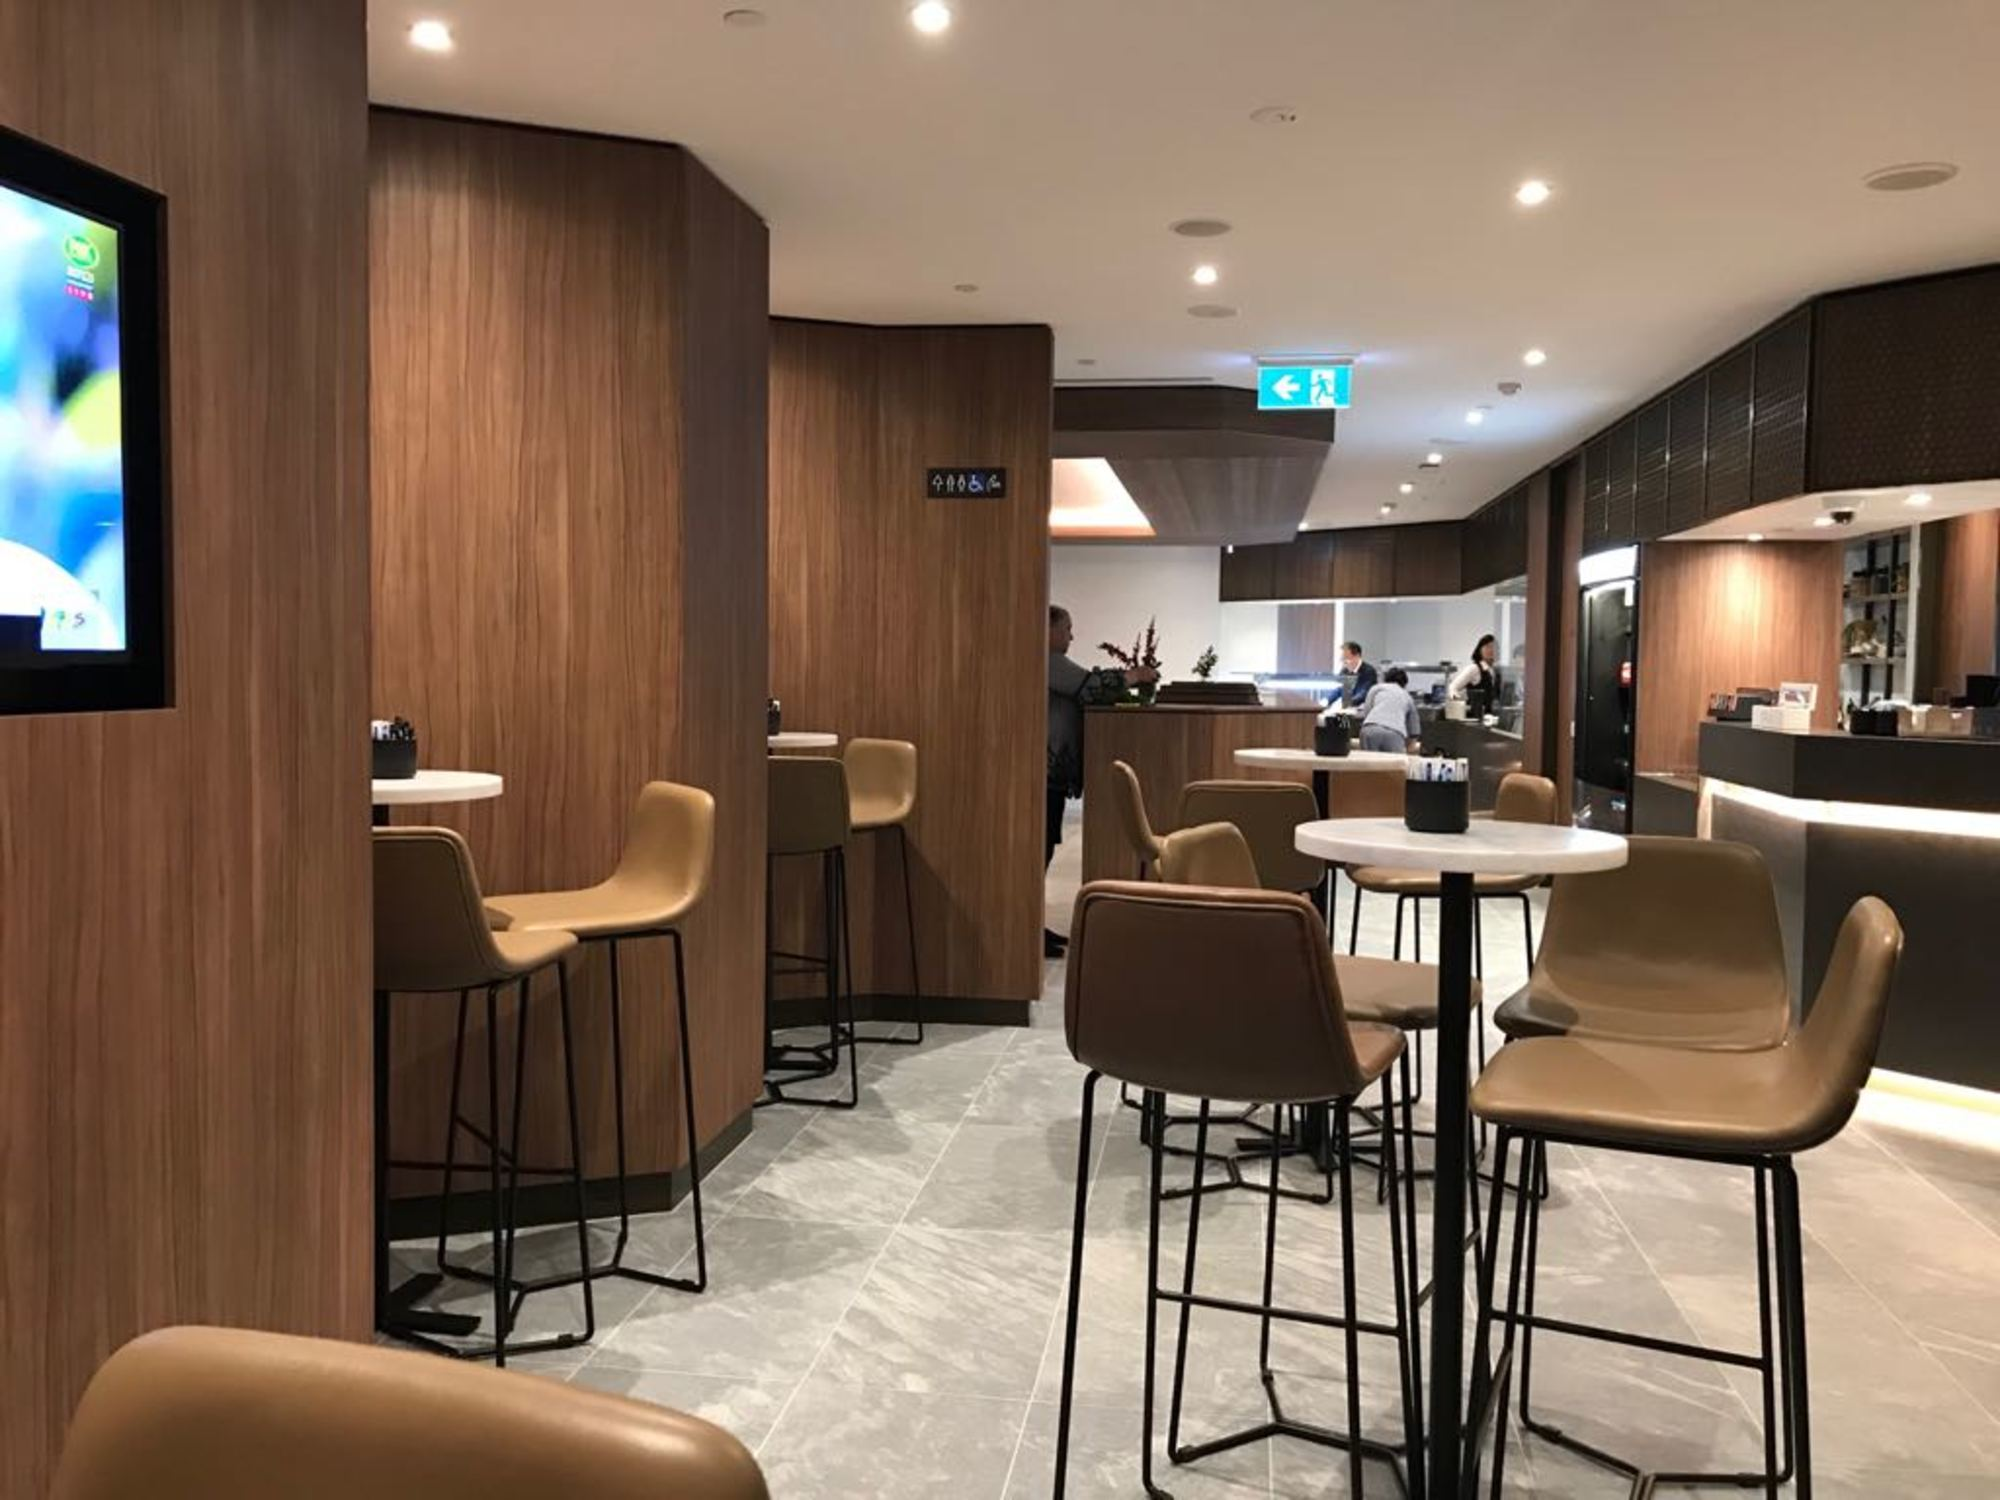 First impressions speed dating canberra airport